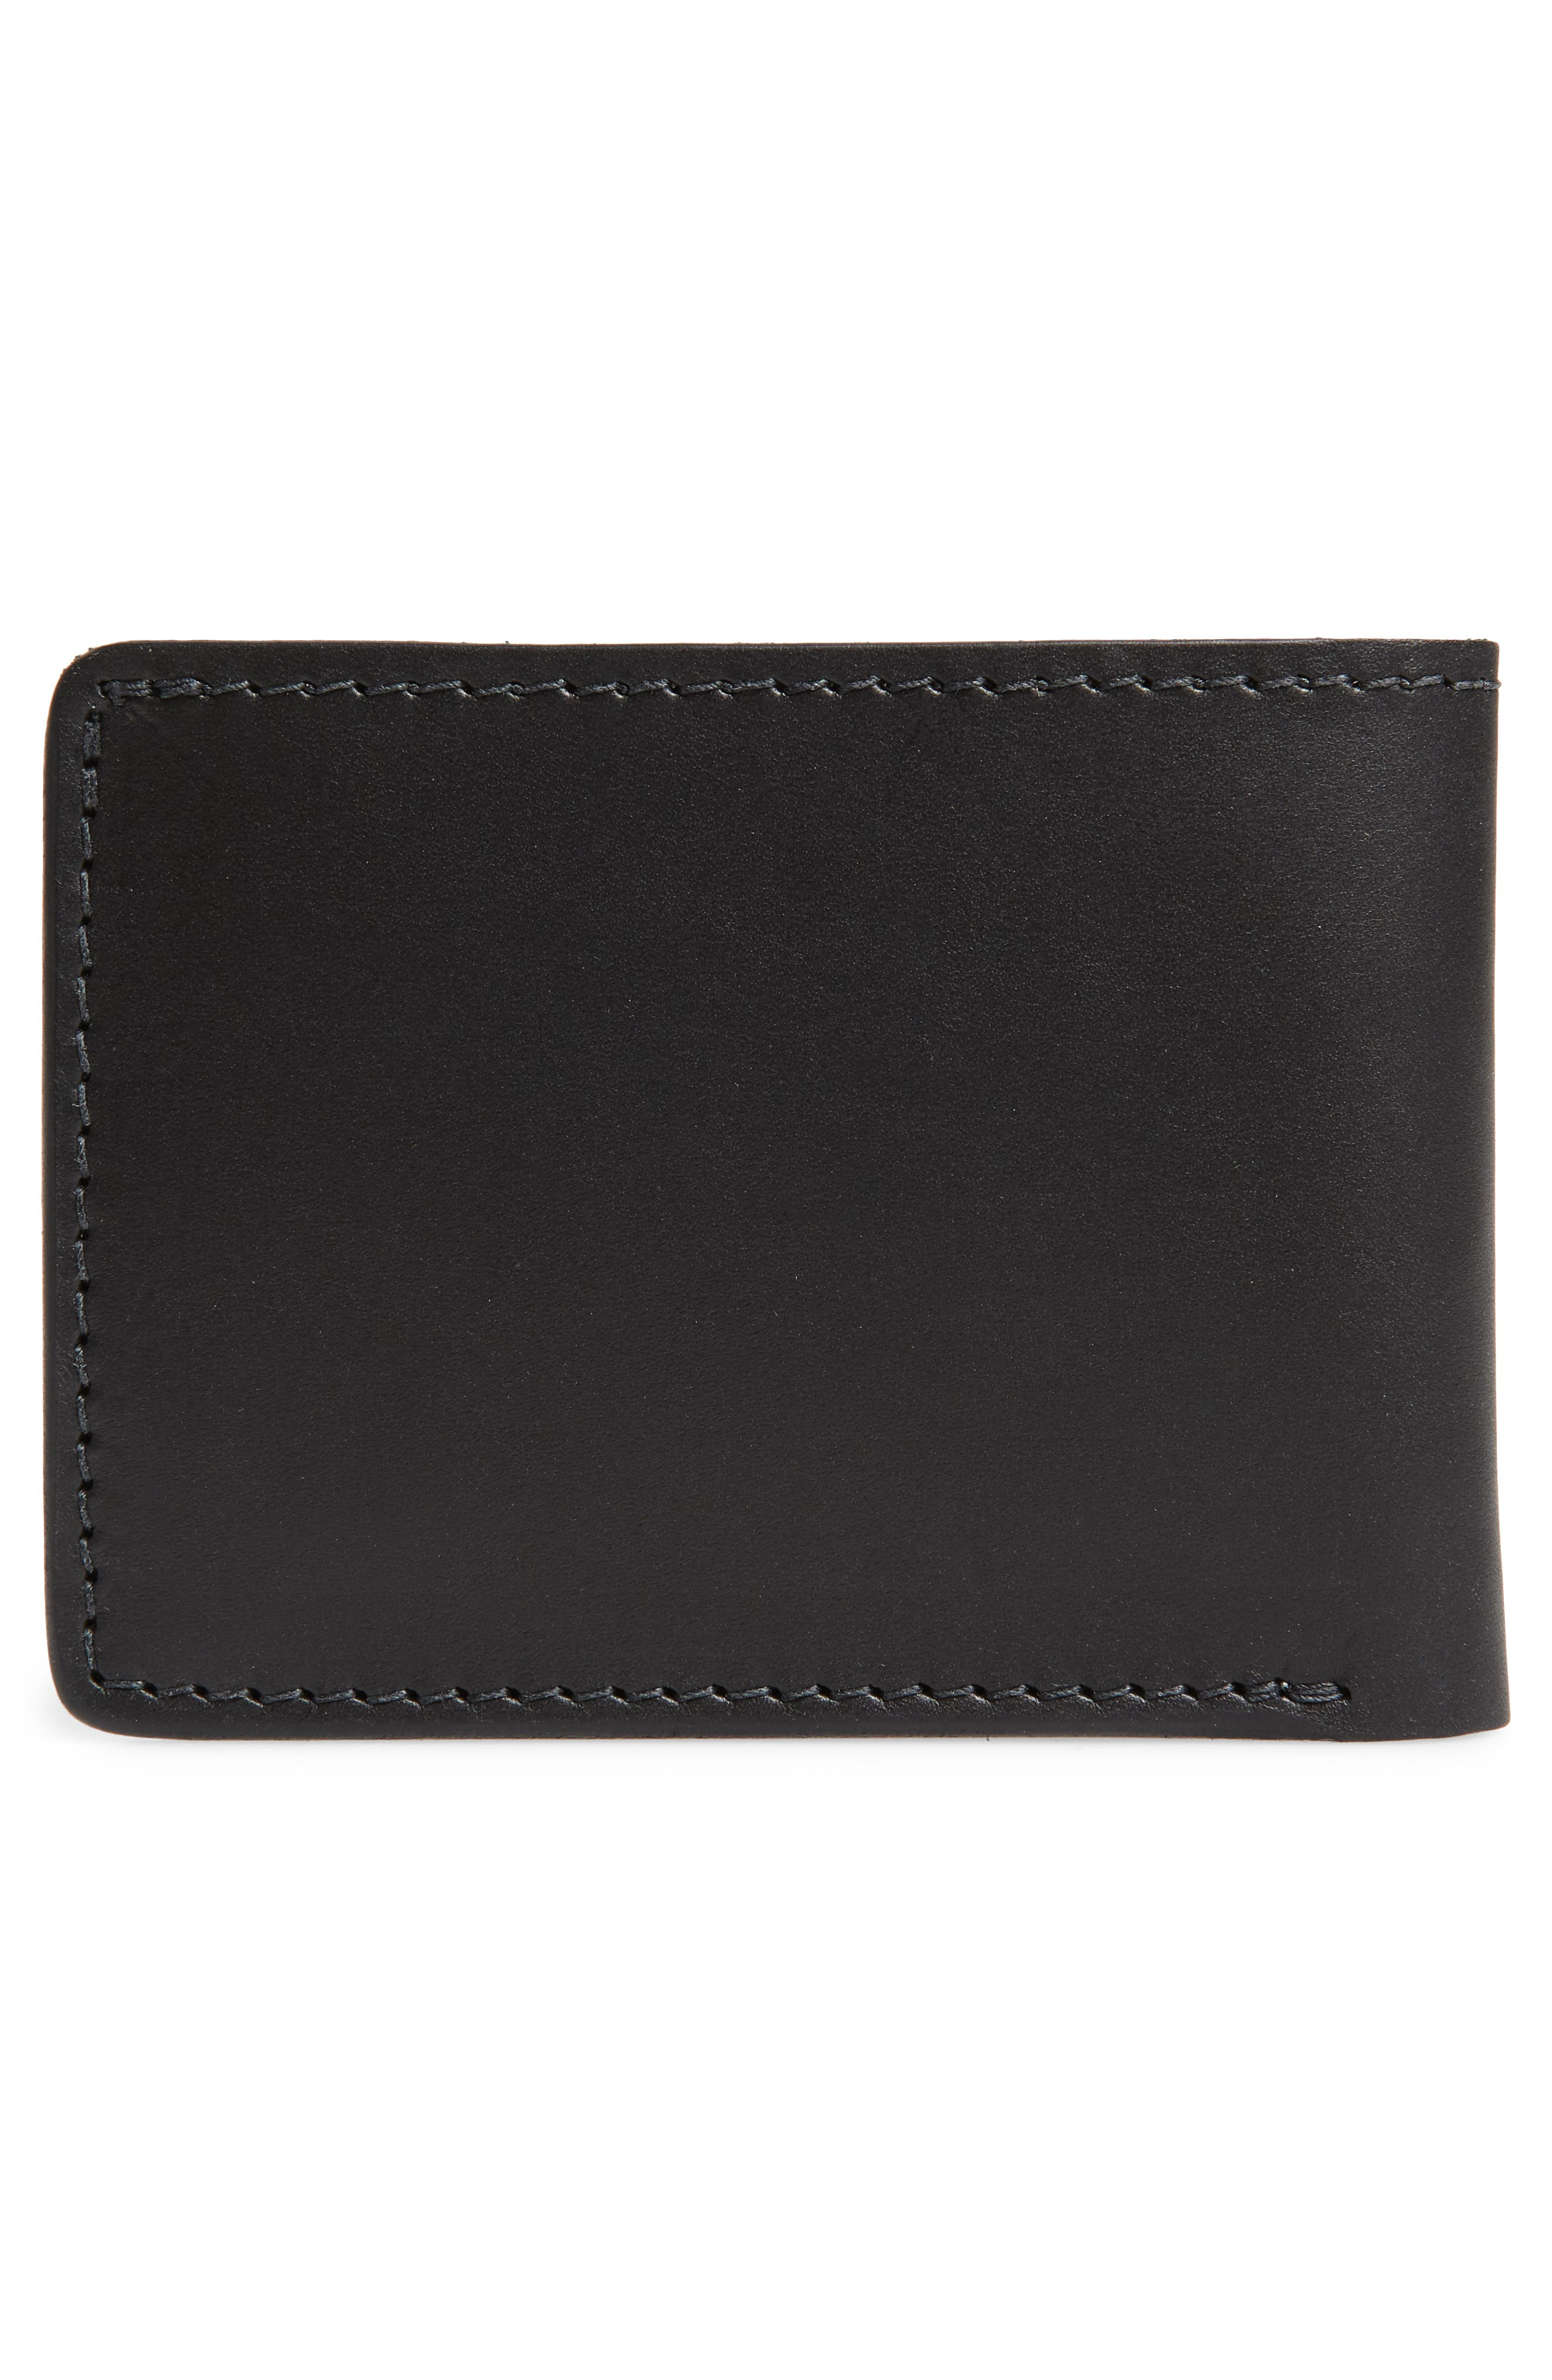 Utility Leather Bifold Wallet,                             Alternate thumbnail 3, color,                             BLACK